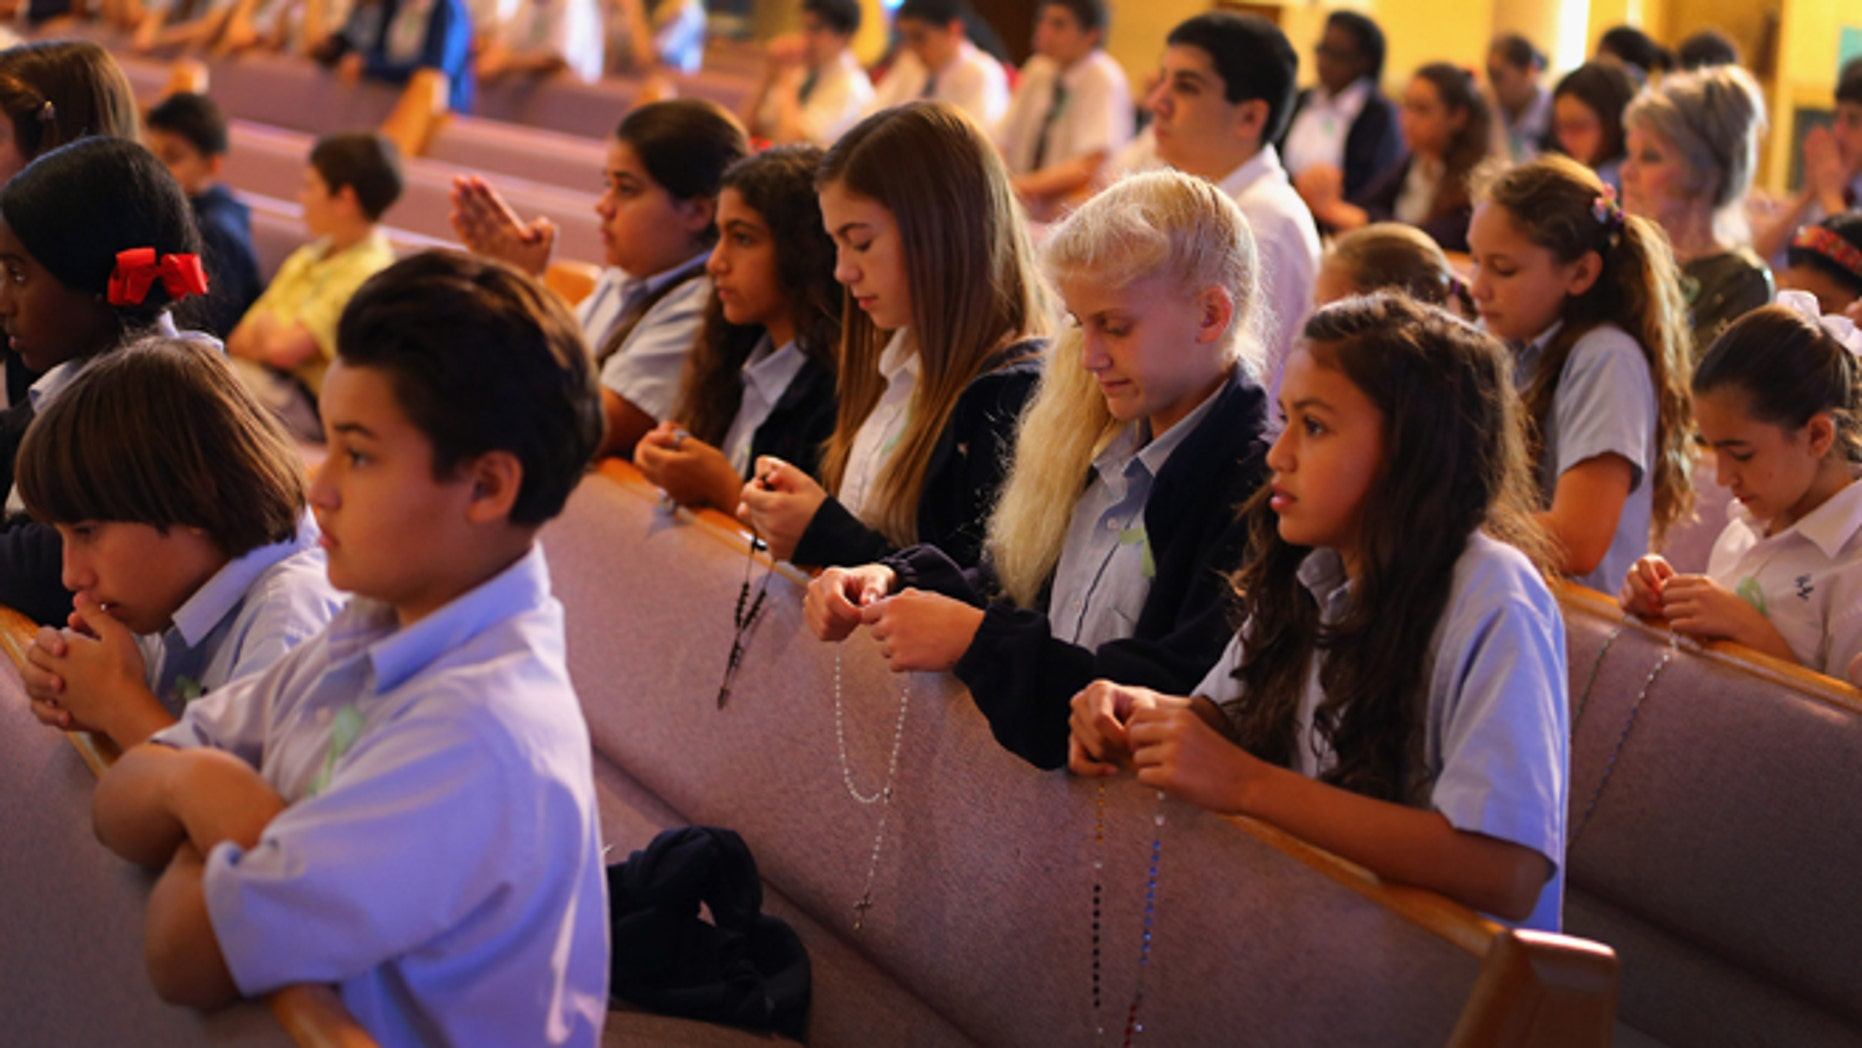 Children pray during a service, at St. Rose of Lima School on December 21, 2012 in Miami, Florida.